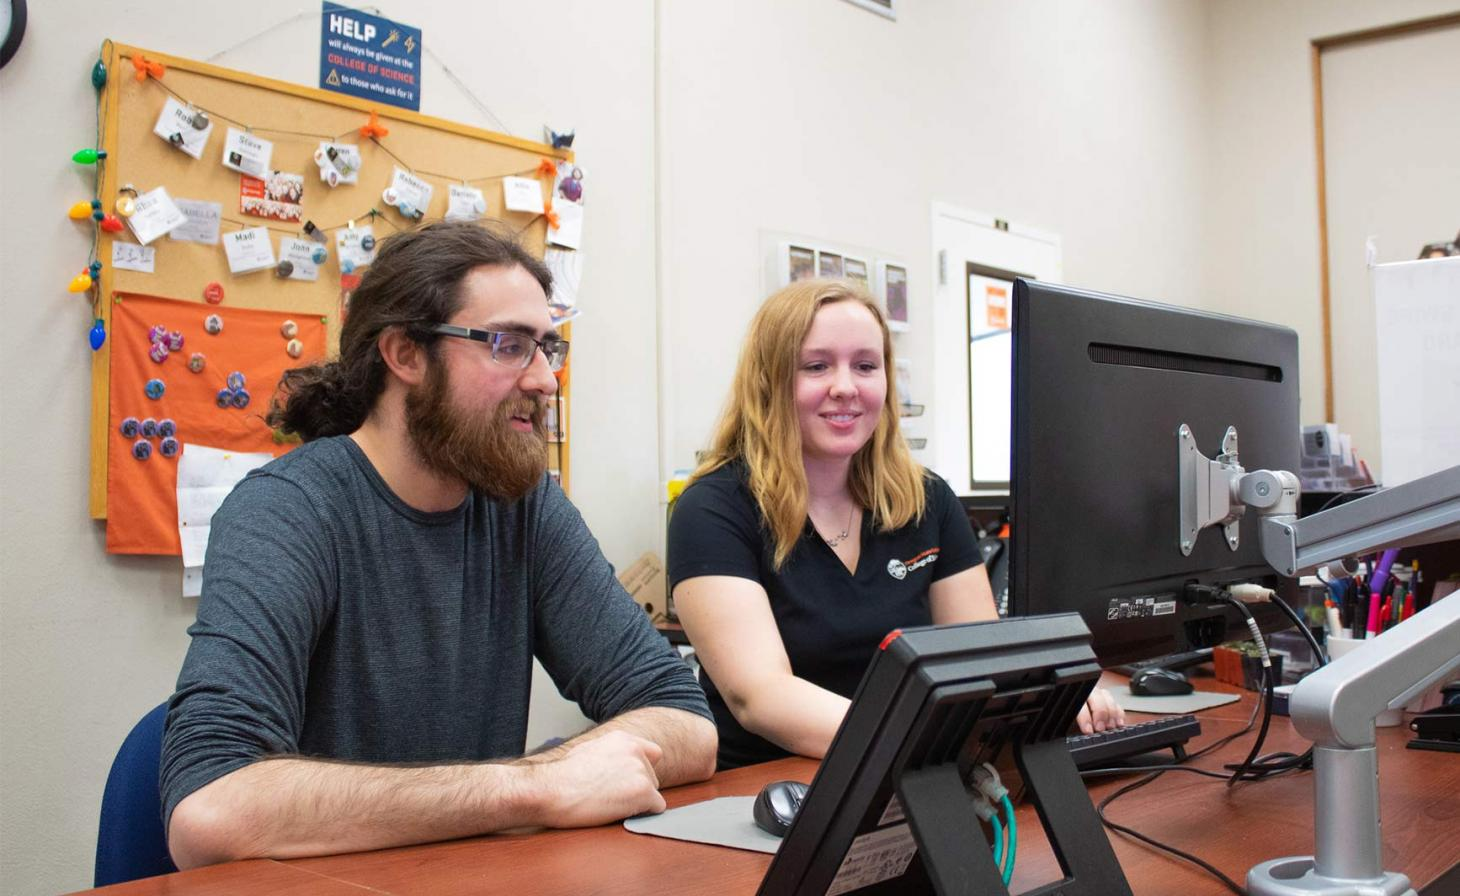 Steve Dobrioglio and Madeline Bloom working on computer in the science success center